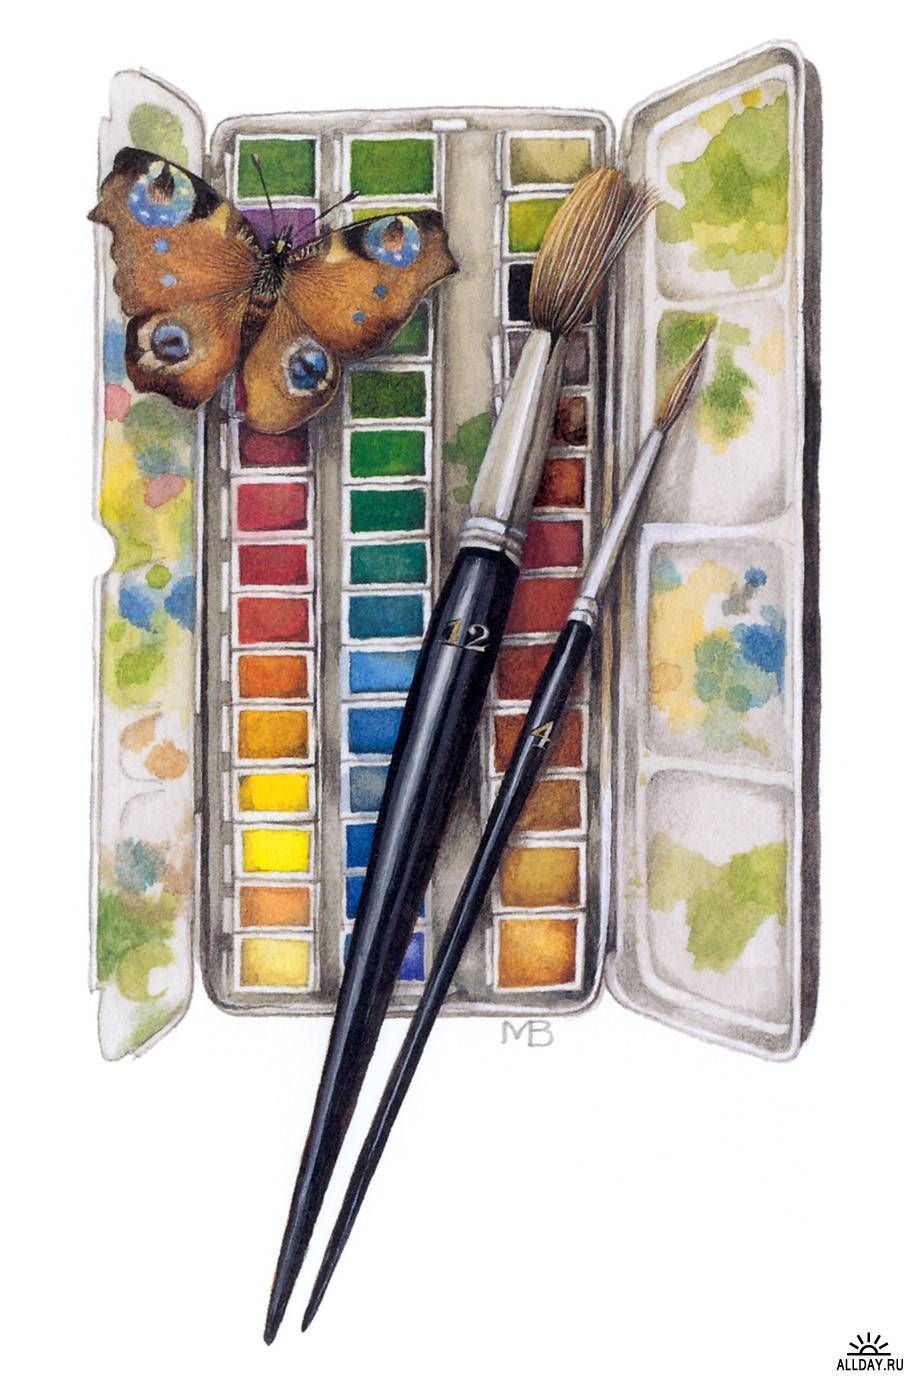 Watercolors and Butterfly: marjolein bastin